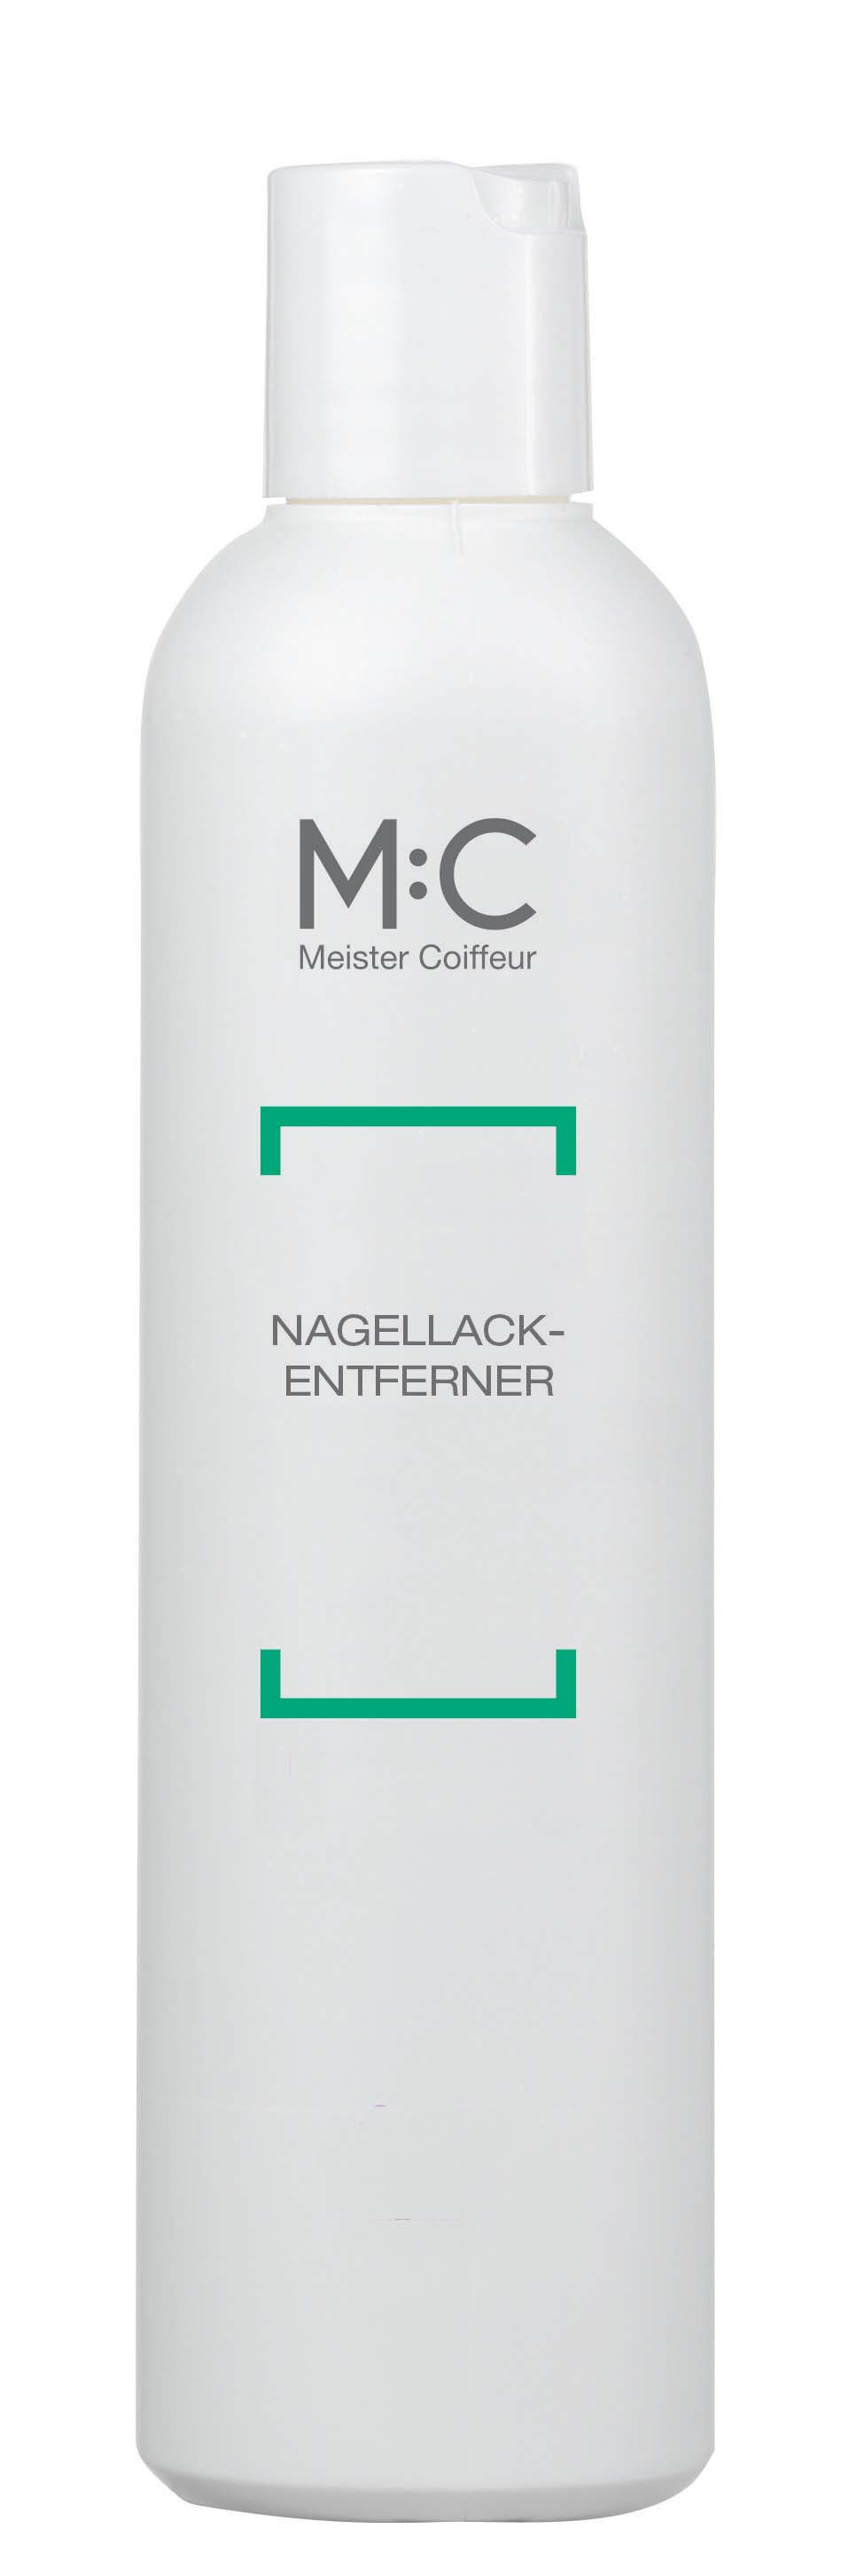 M:C Nail Varnish Remover H 250 ml